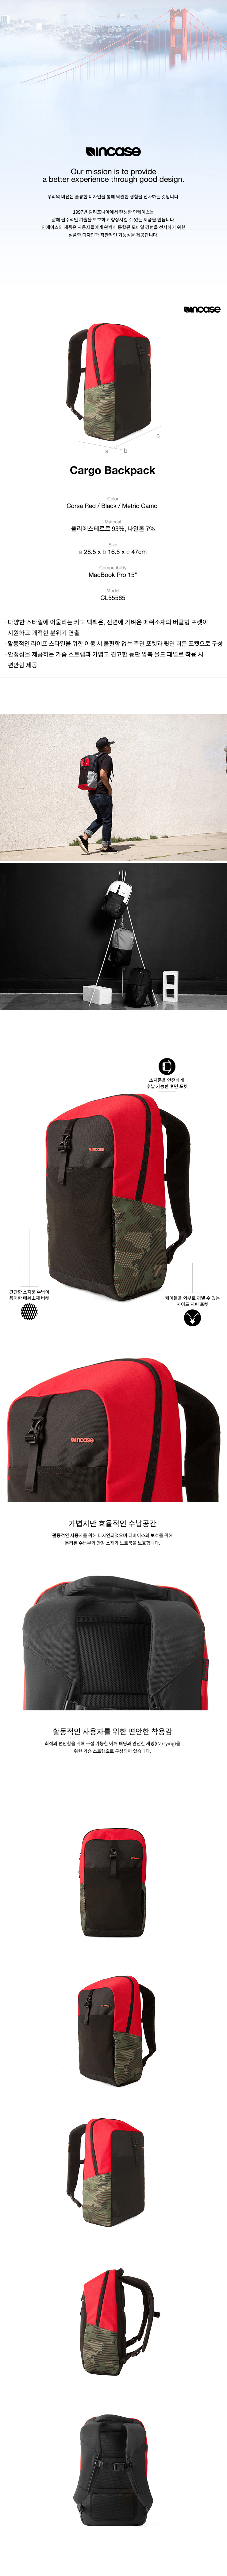 인케이스(INCASE) Cargo Backpack CL55565 (Rosso Corsa Red/Black/Metric Camo)